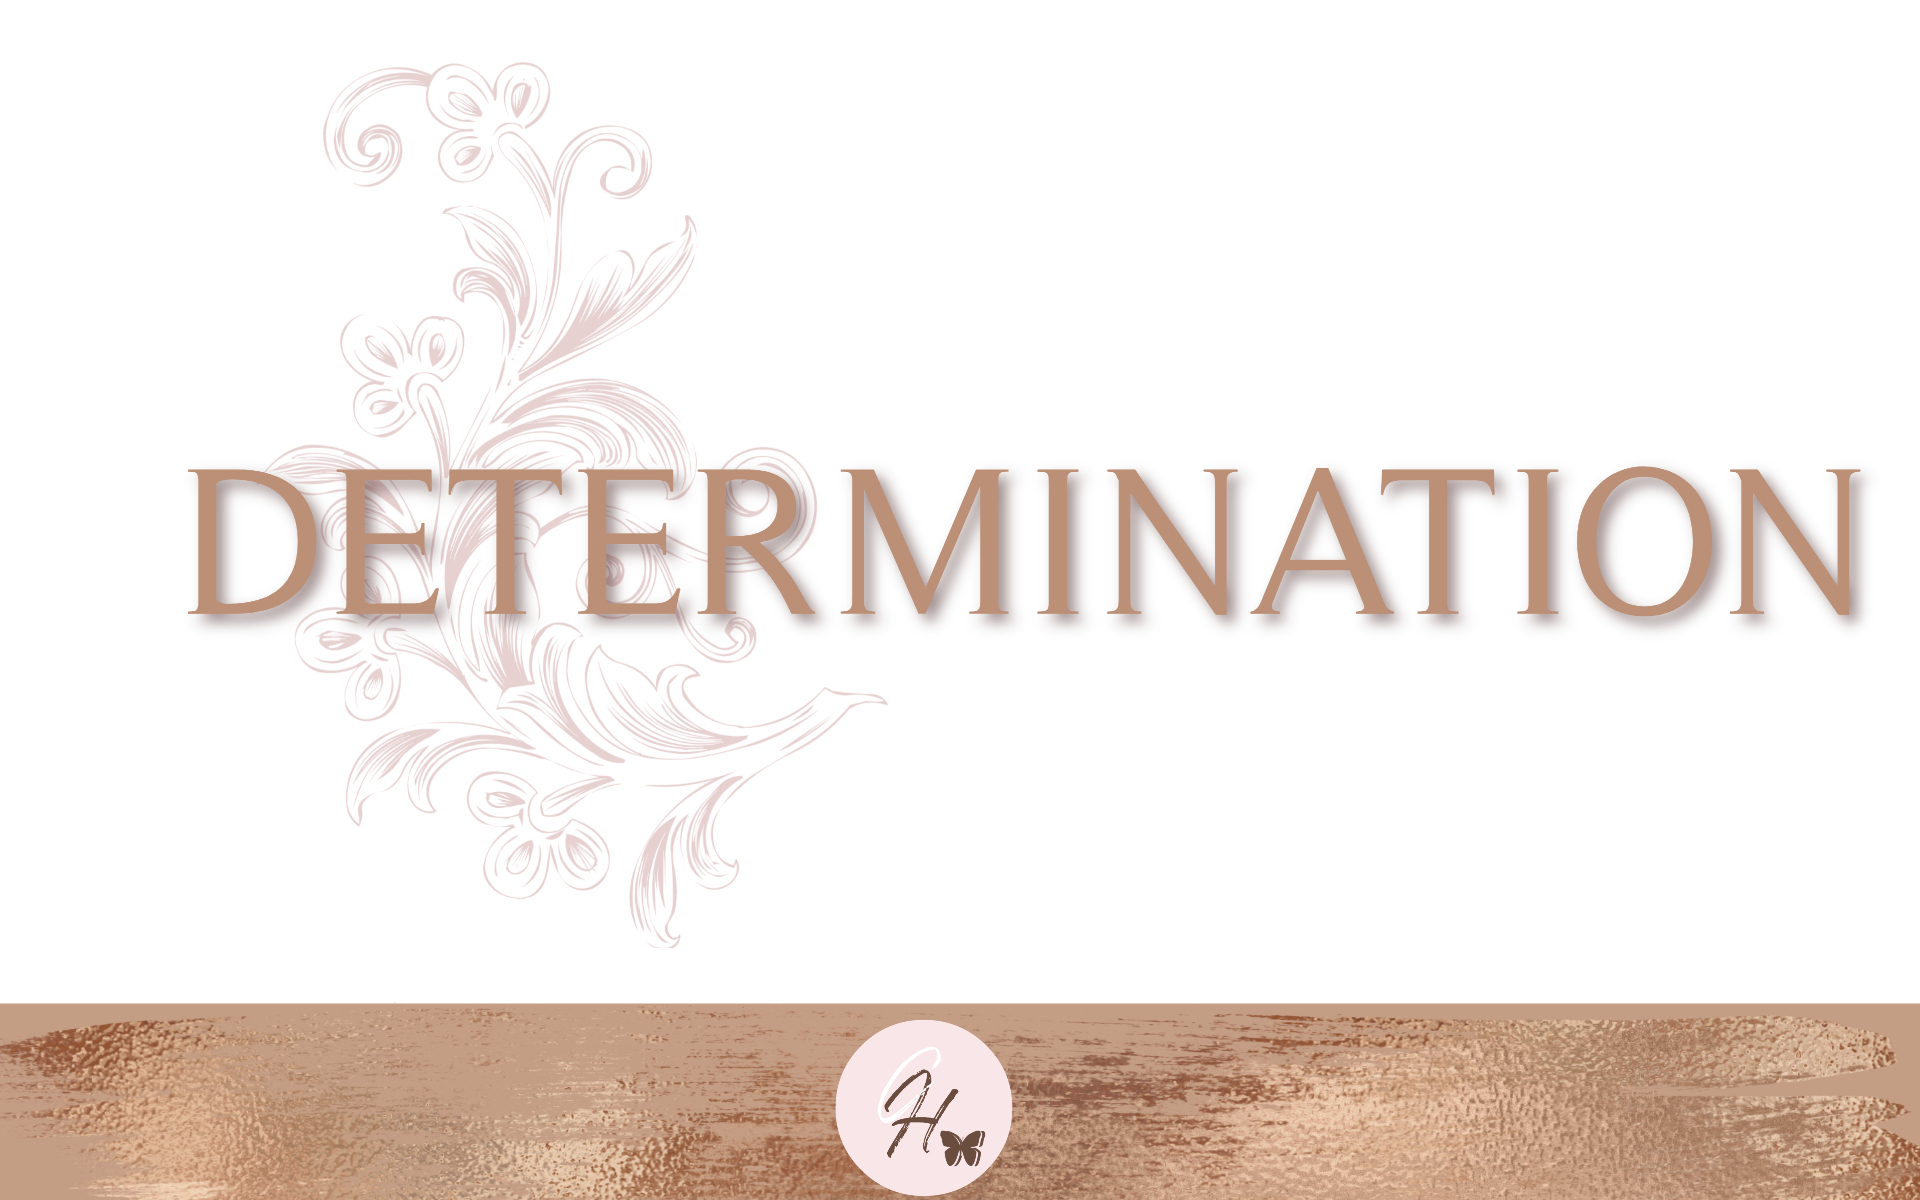 Determination- Bible Study Guide